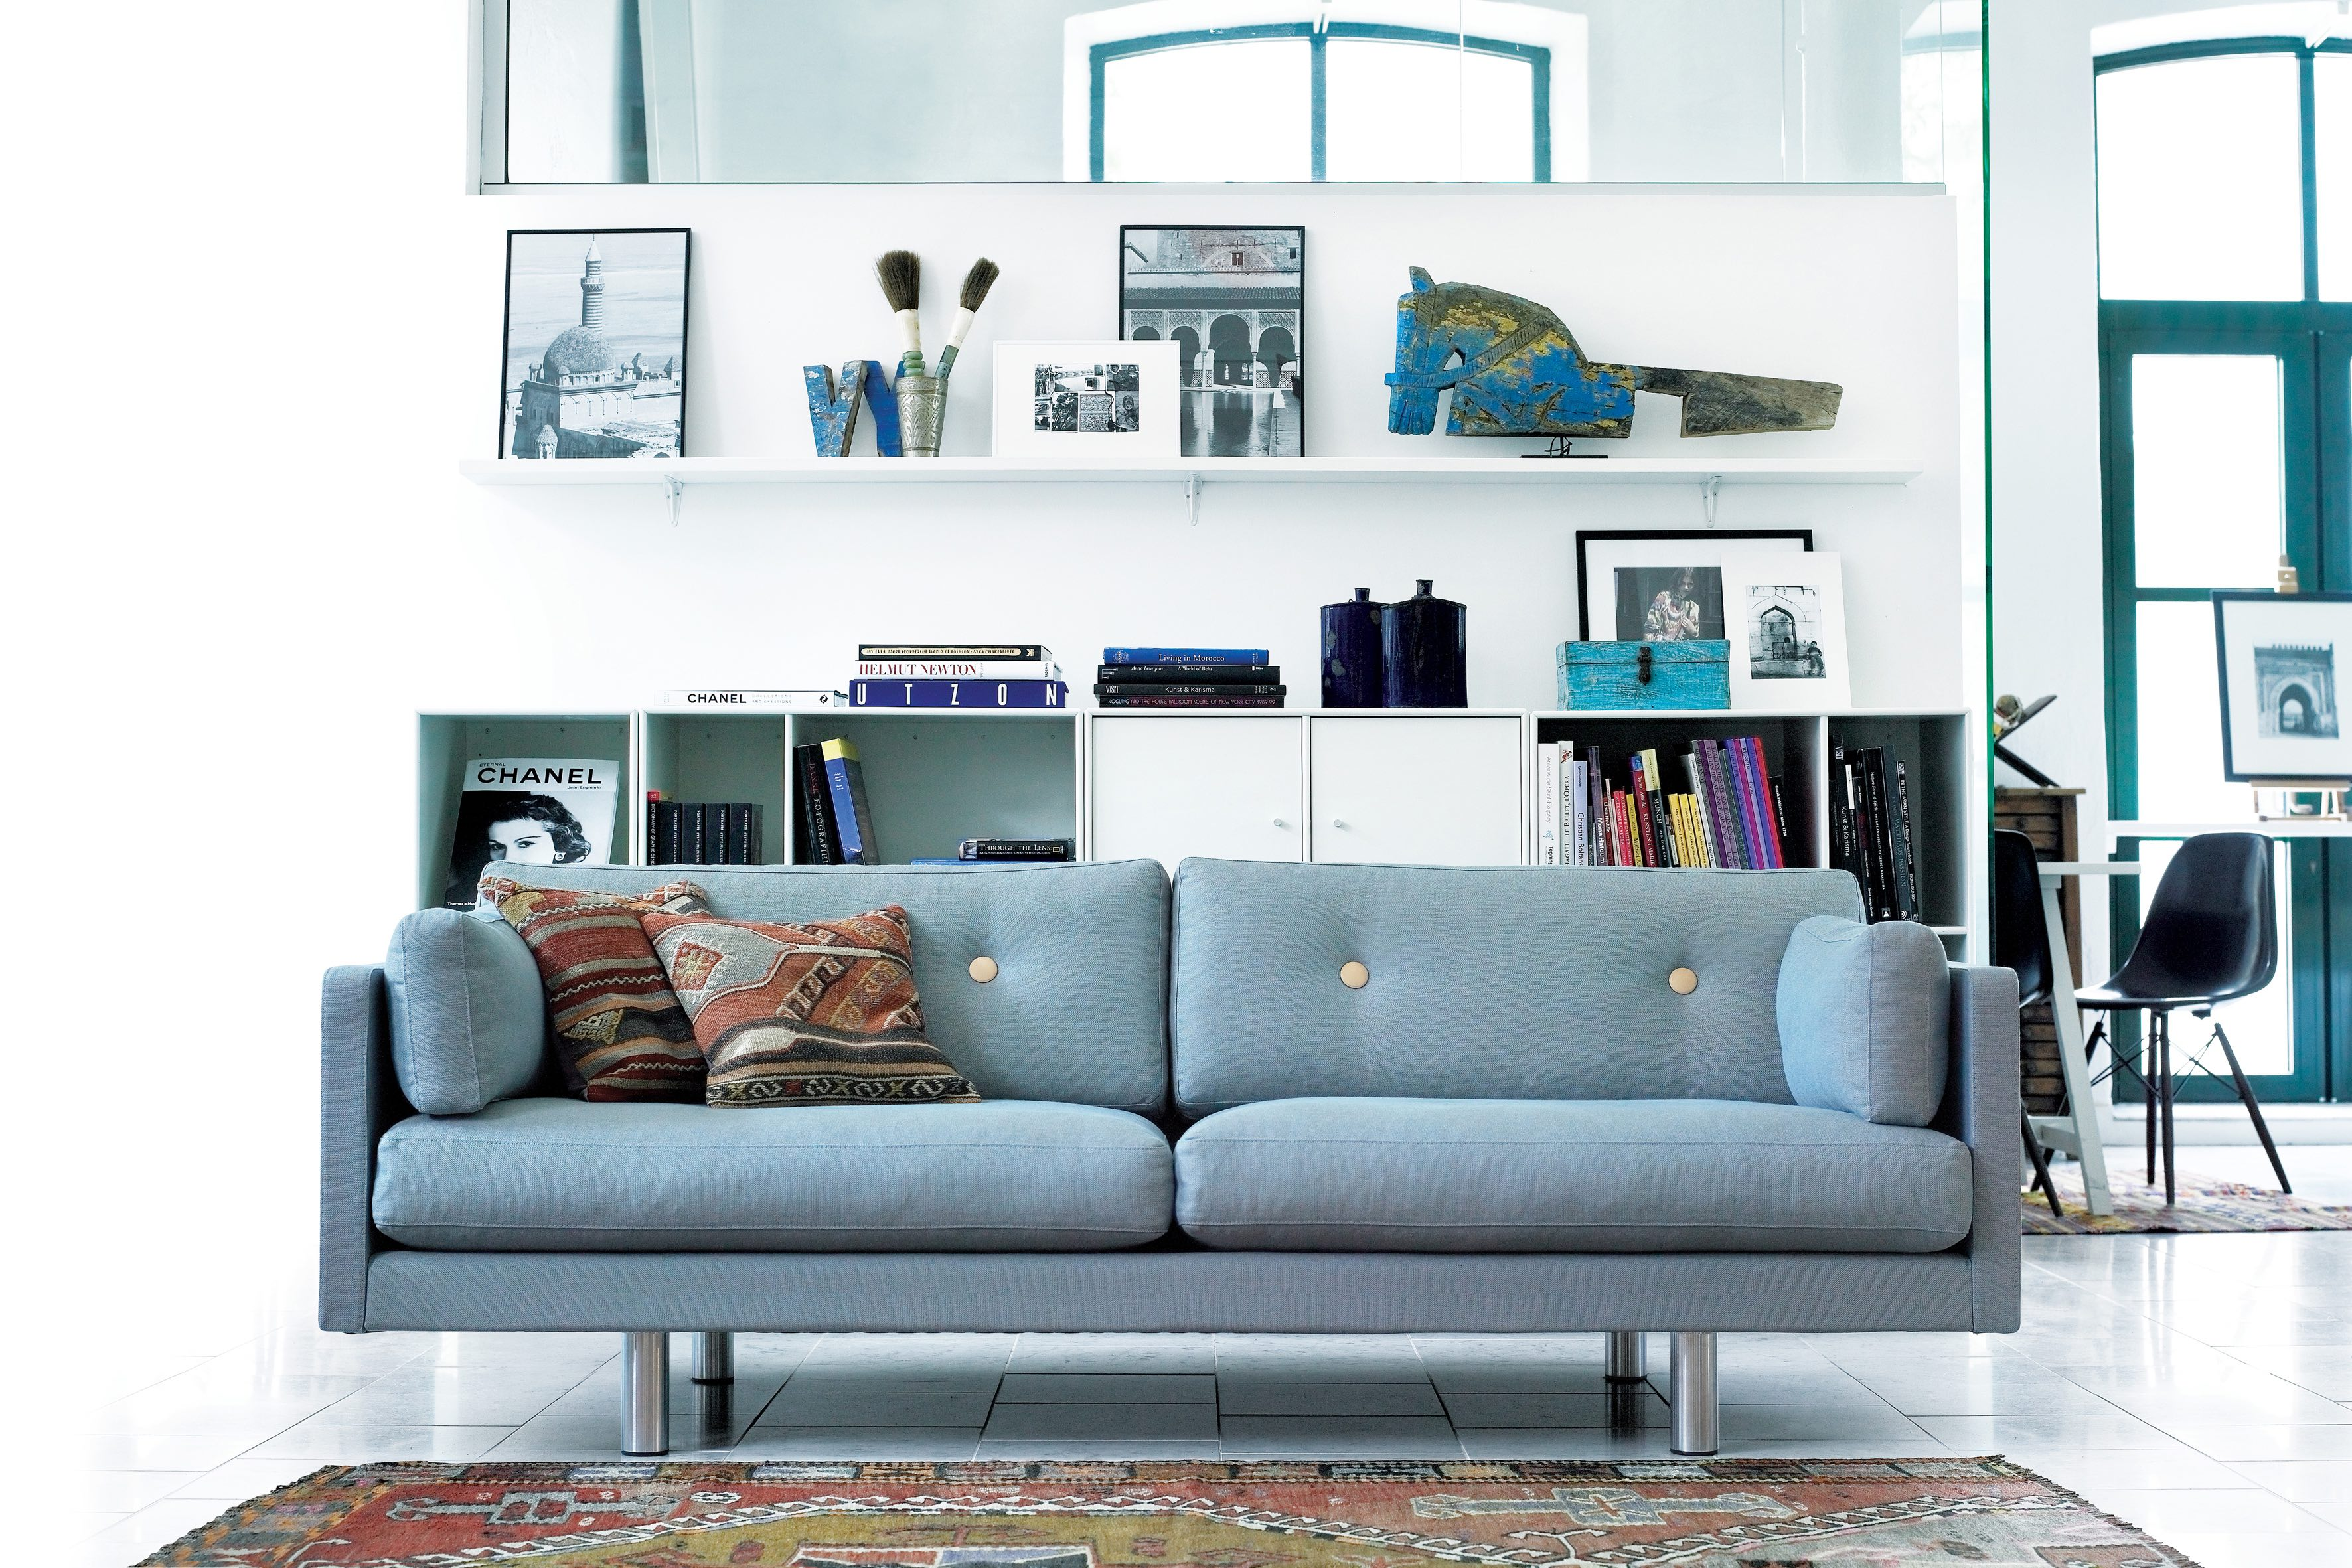 Large two seater sofa from £3,480 © Wharfside